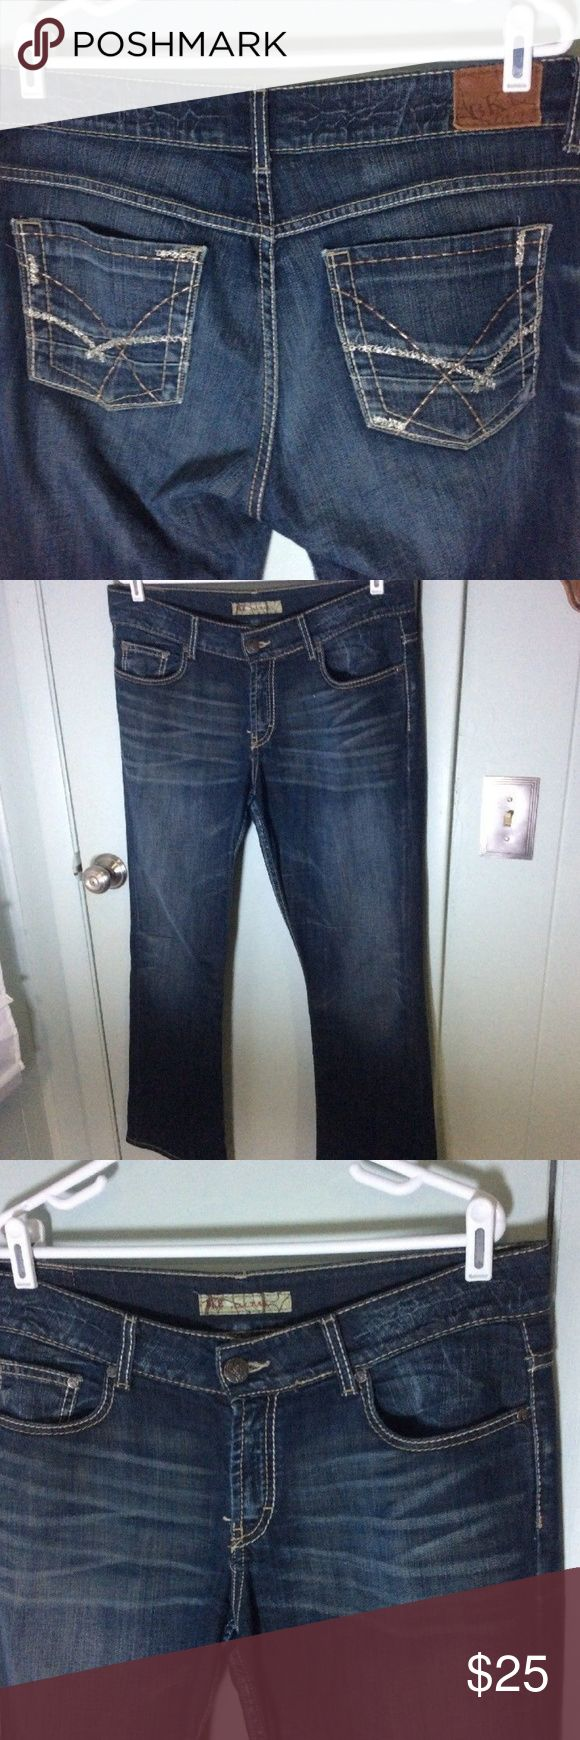 """Buckle BKE Denim Culture Mens Bootcut Jean BKE jeans style is culture....size marked on tag is 33 x 31.5..measures to 35 x 32...see actual measurements for correct fit...darker wash... a little metallic on the pockets....some wear at bottoms hems....see all pictures  17.5"""" waist  9.5"""" rise  32"""" inseam BKE Jeans Bootcut"""